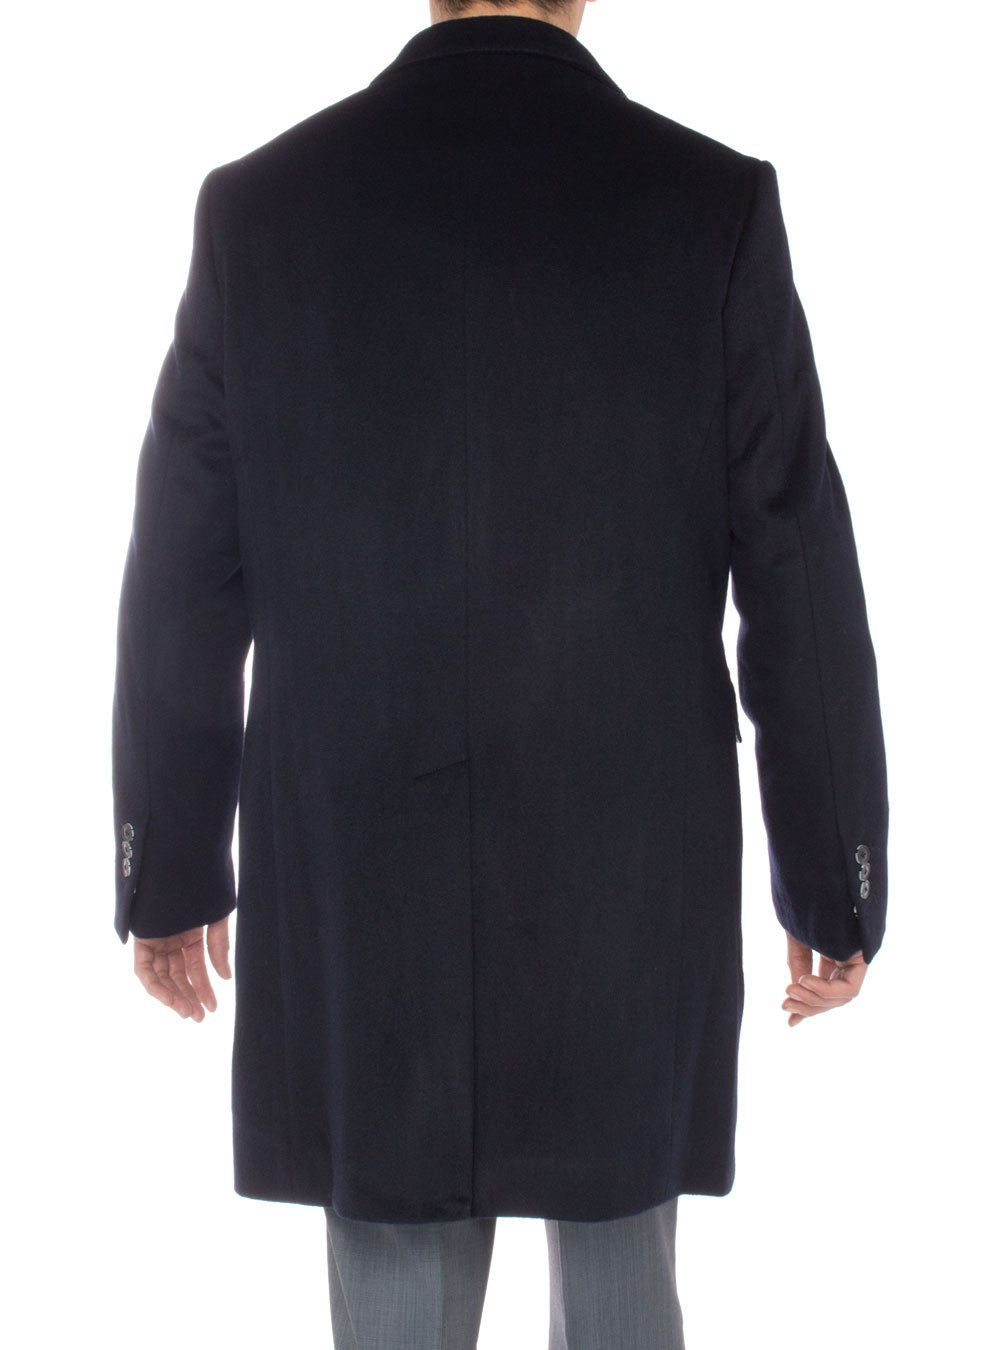 Luciano Natazzi Men's Cashmere Topcoat Modern Ticket Pocket Trench Coat Overcoat (48 US - 58 EU, Navy Blue) by Luciano Natazzi (Image #4)